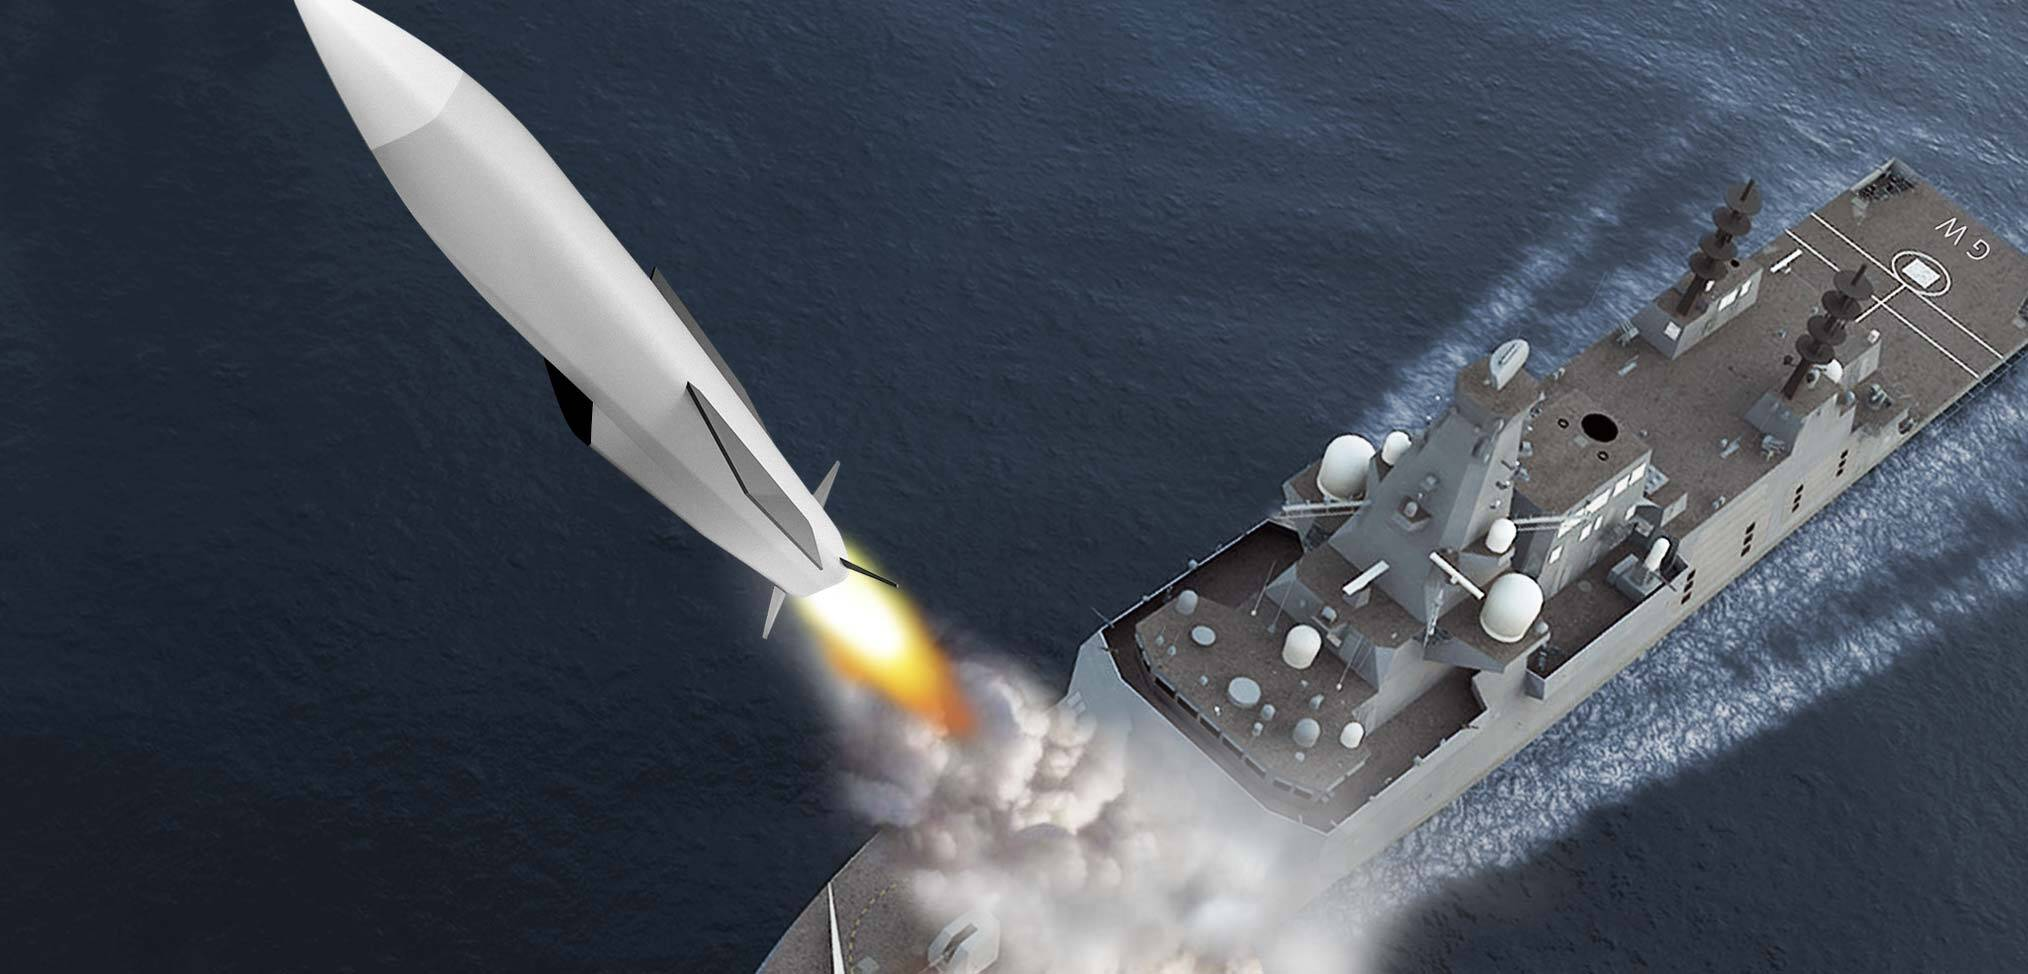 Royal Navy's Type 26 Frigates to be equipped with cruise missiles by 2028